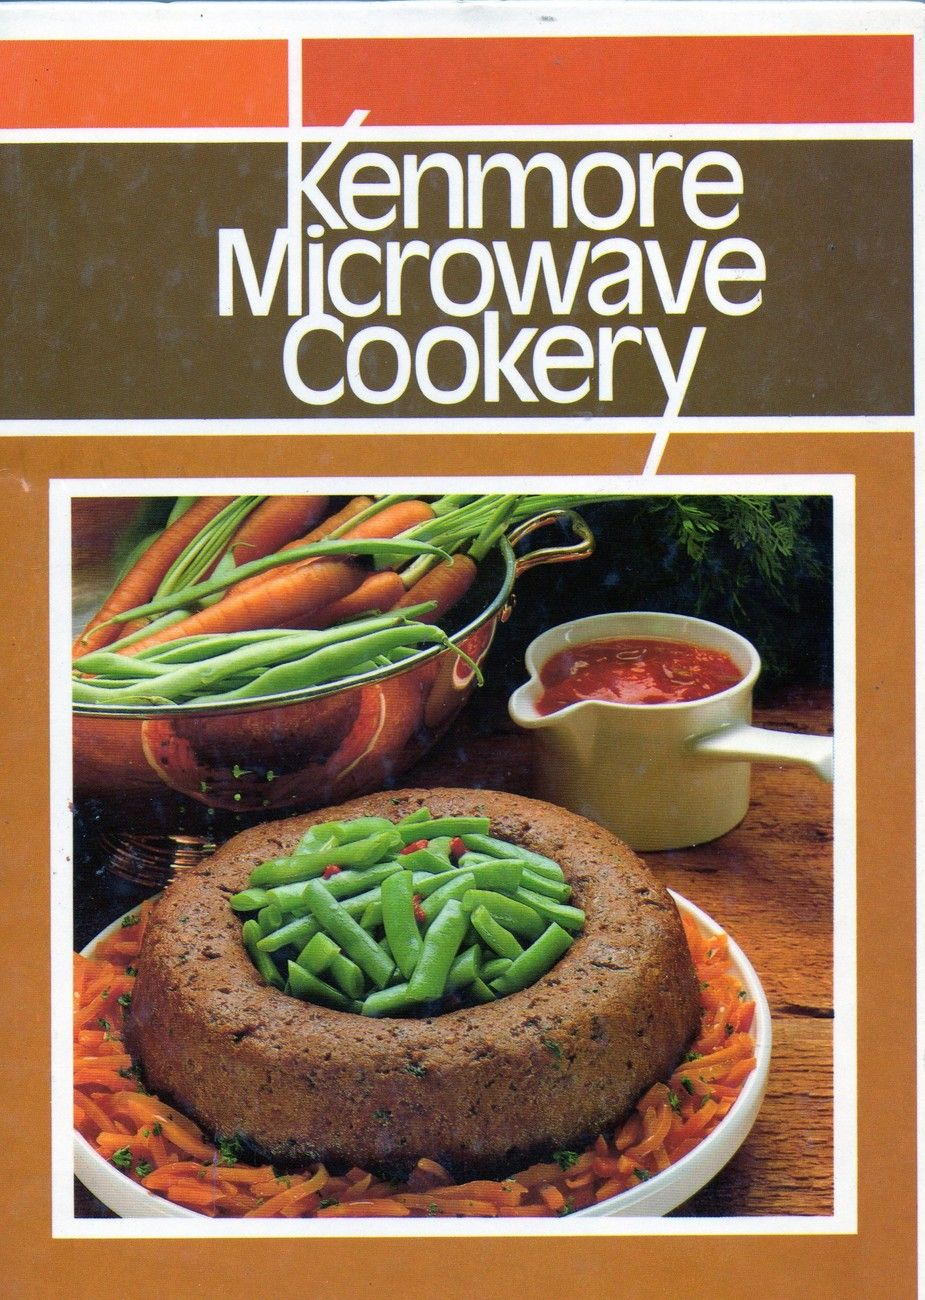 Kenmore Microwave Cookery cookbook recipe Sears cooking guide illustrated 1982